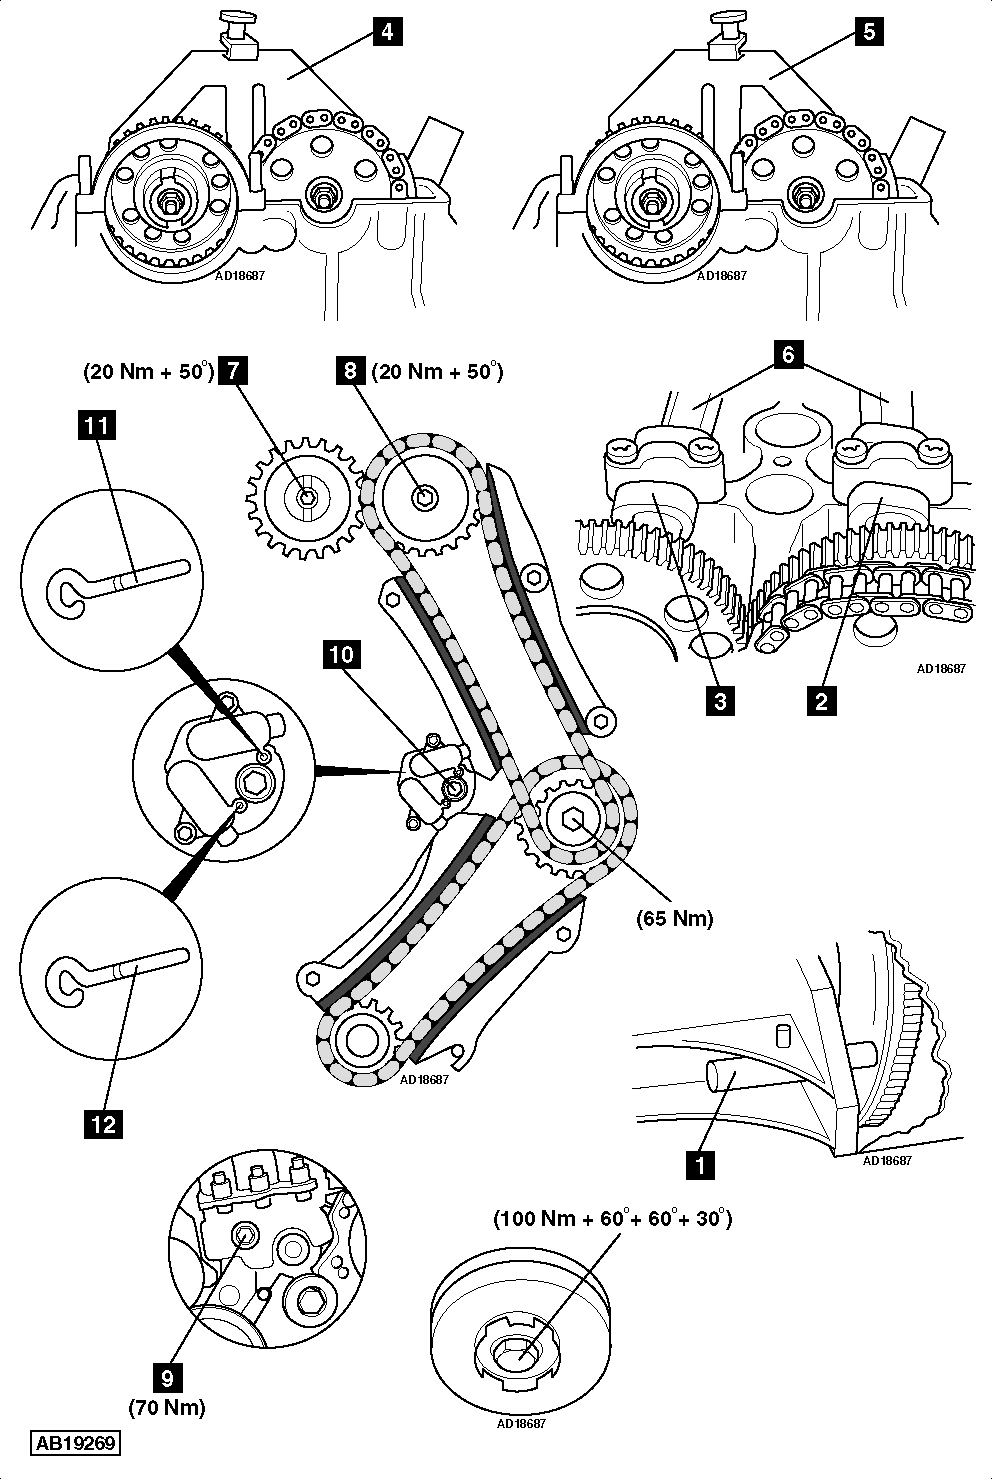 How To Replace Timing Chain On BMW 320d E46. How To Replace Timing Chain On BMW 320d E46. BMW. BMW Engine Diagram 3 Series At Justdesktopwallpapers.com